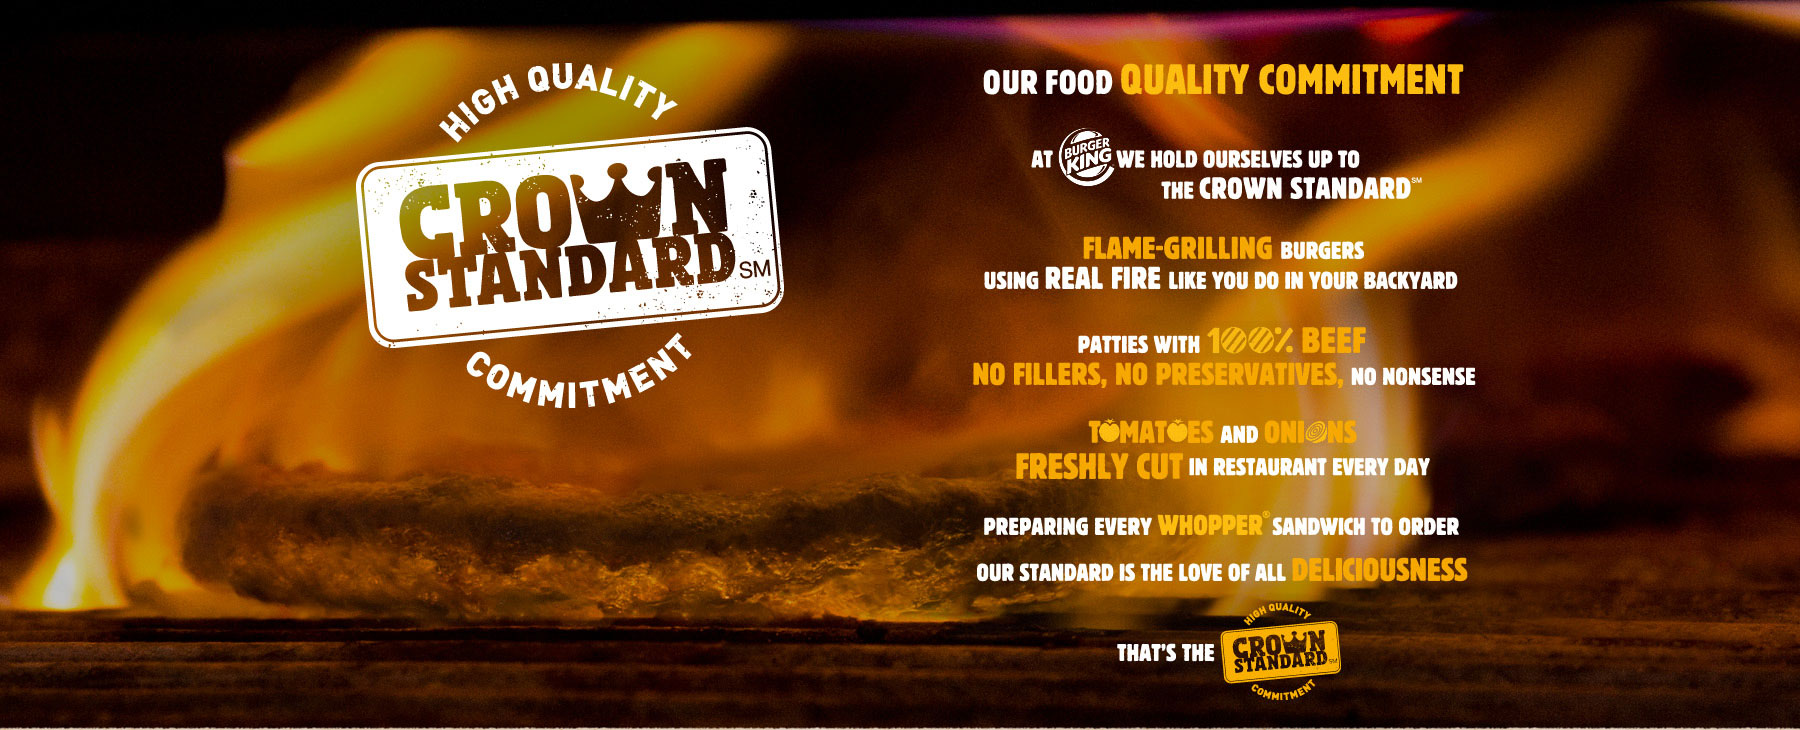 OUR FOOD QUALITY COMMITMENT  AT BURGER KING WE HOLD OURSELVES UP TO THE CROWN STANDARDTM  FLAME-GRILLING BURGERS  USING REAL FIRE LIKE YOU DO IN YOUR BACKYARD  PATTIES WITH 100% BEEF NO FILLERS, NO PRESERVATIVES, NO NONSENSE  TOMATOES AND ONIONS FRESHLY CUT IN RESTAURANT EVERY DAY  PREPARING EVERY WHOPPER® SANDWICH TO ORDER  OUR STANDARD IS THE LOVE OF ALL DELCIOUSNESS  THAT'S THE CROWN STANDARD